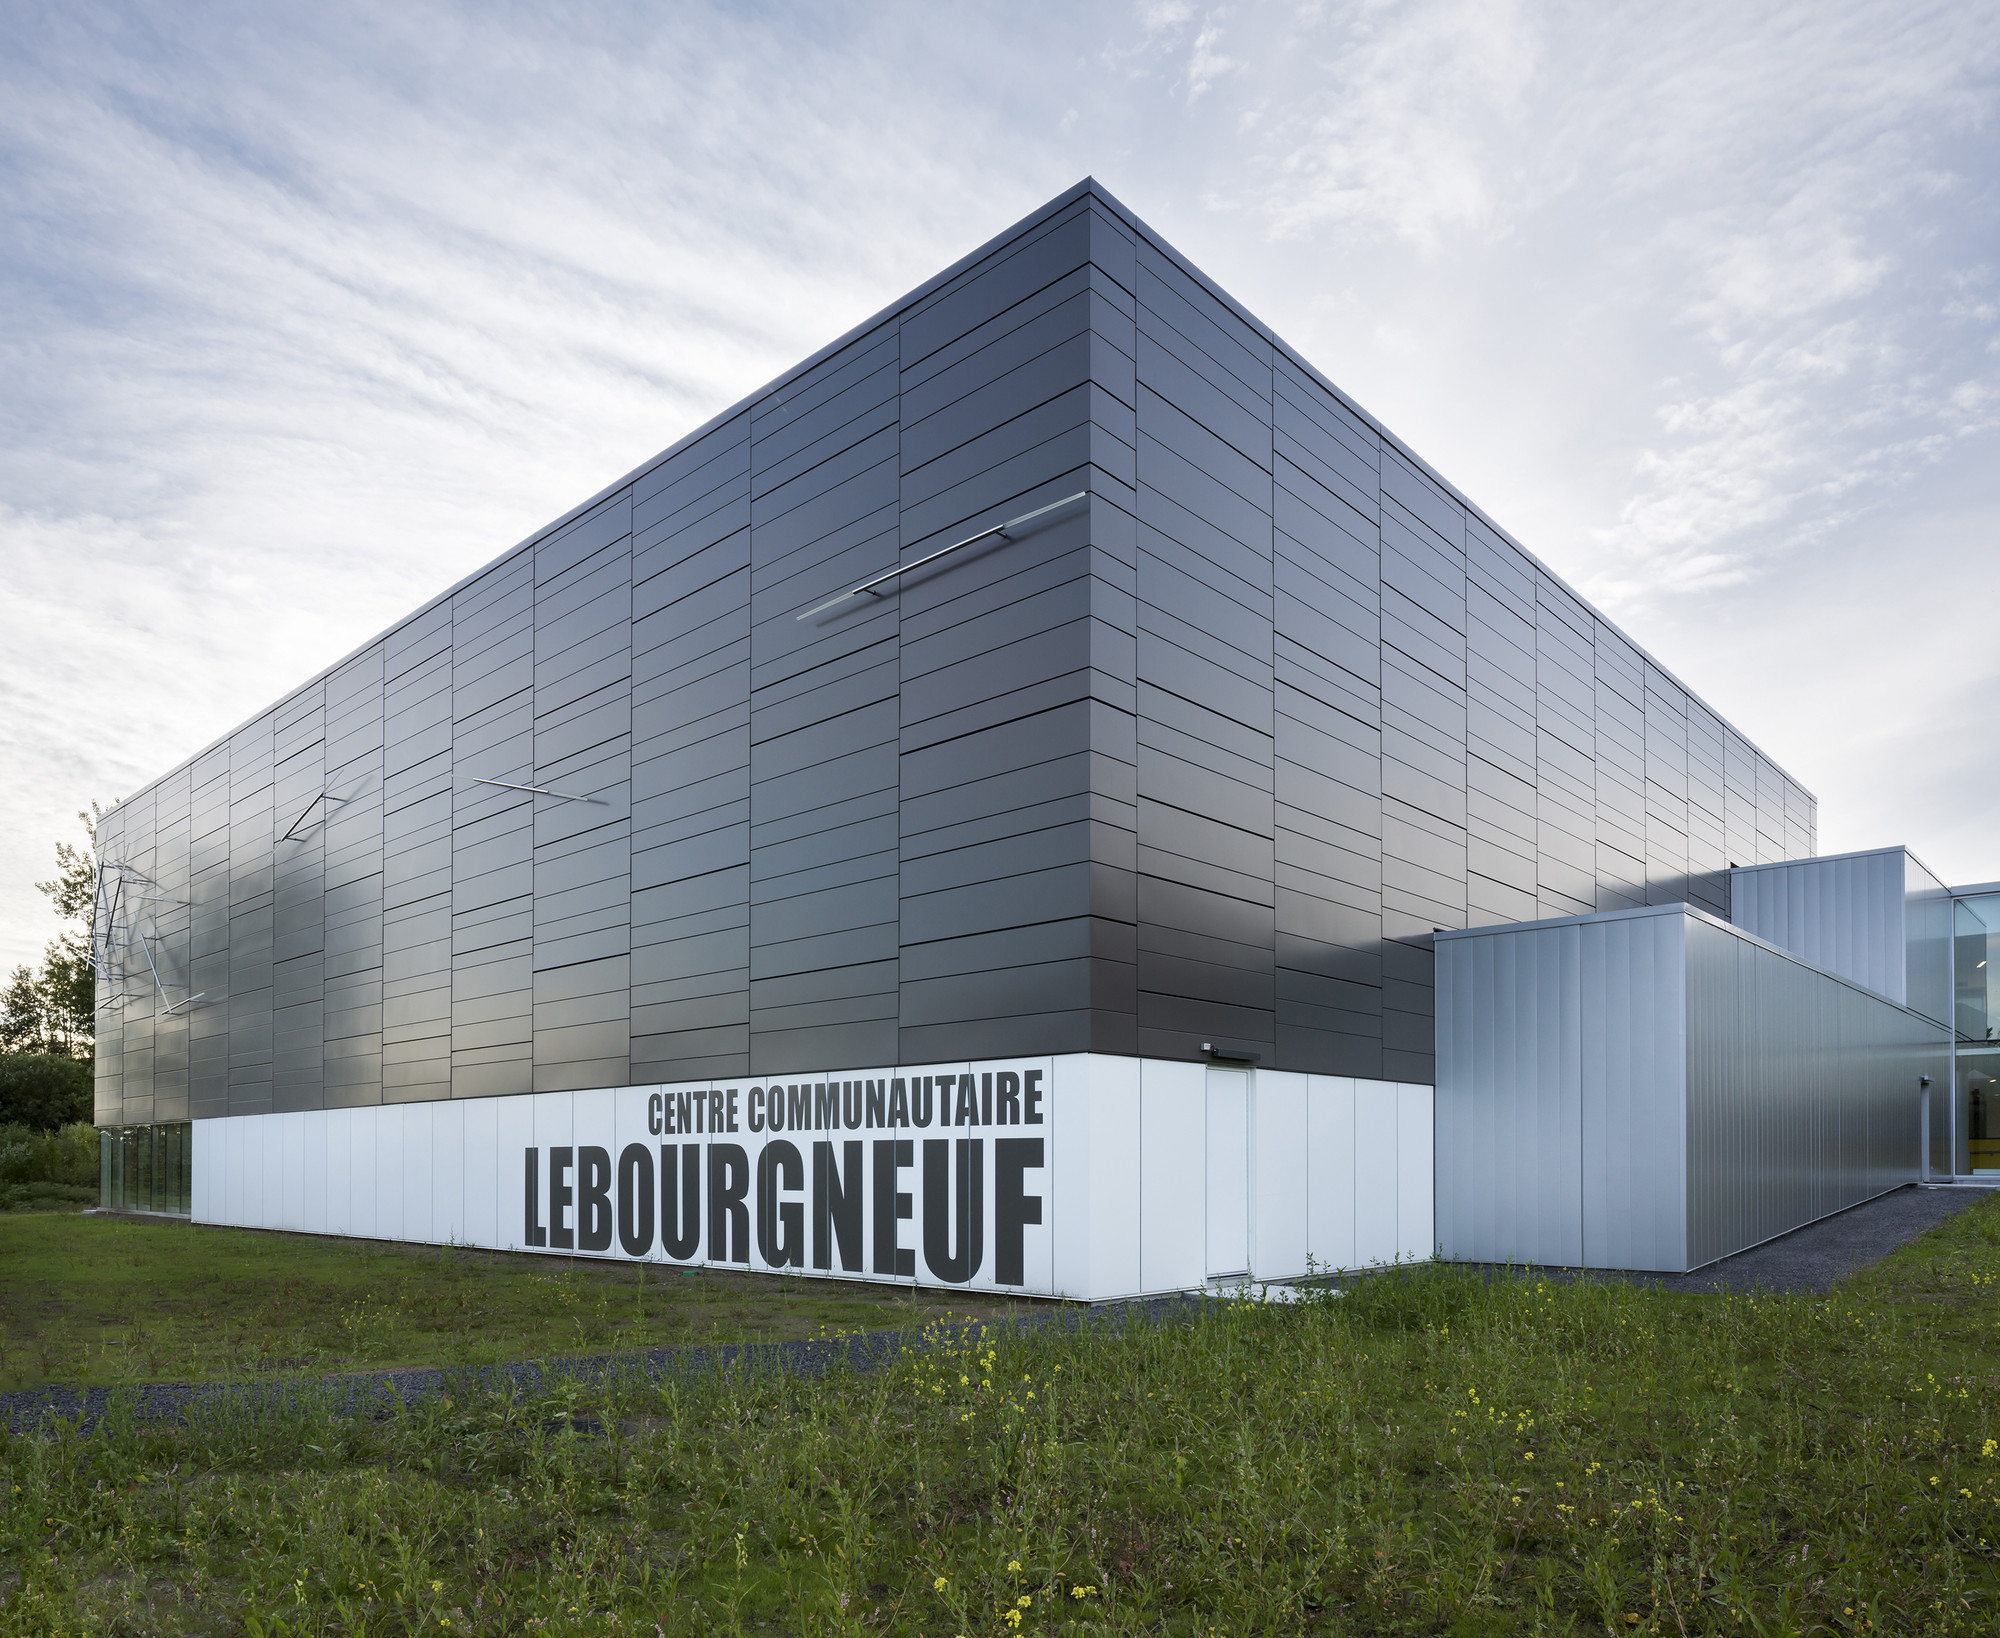 Lebourgneuf Community Center / CCM2 architectes, © Stéphane Groleau